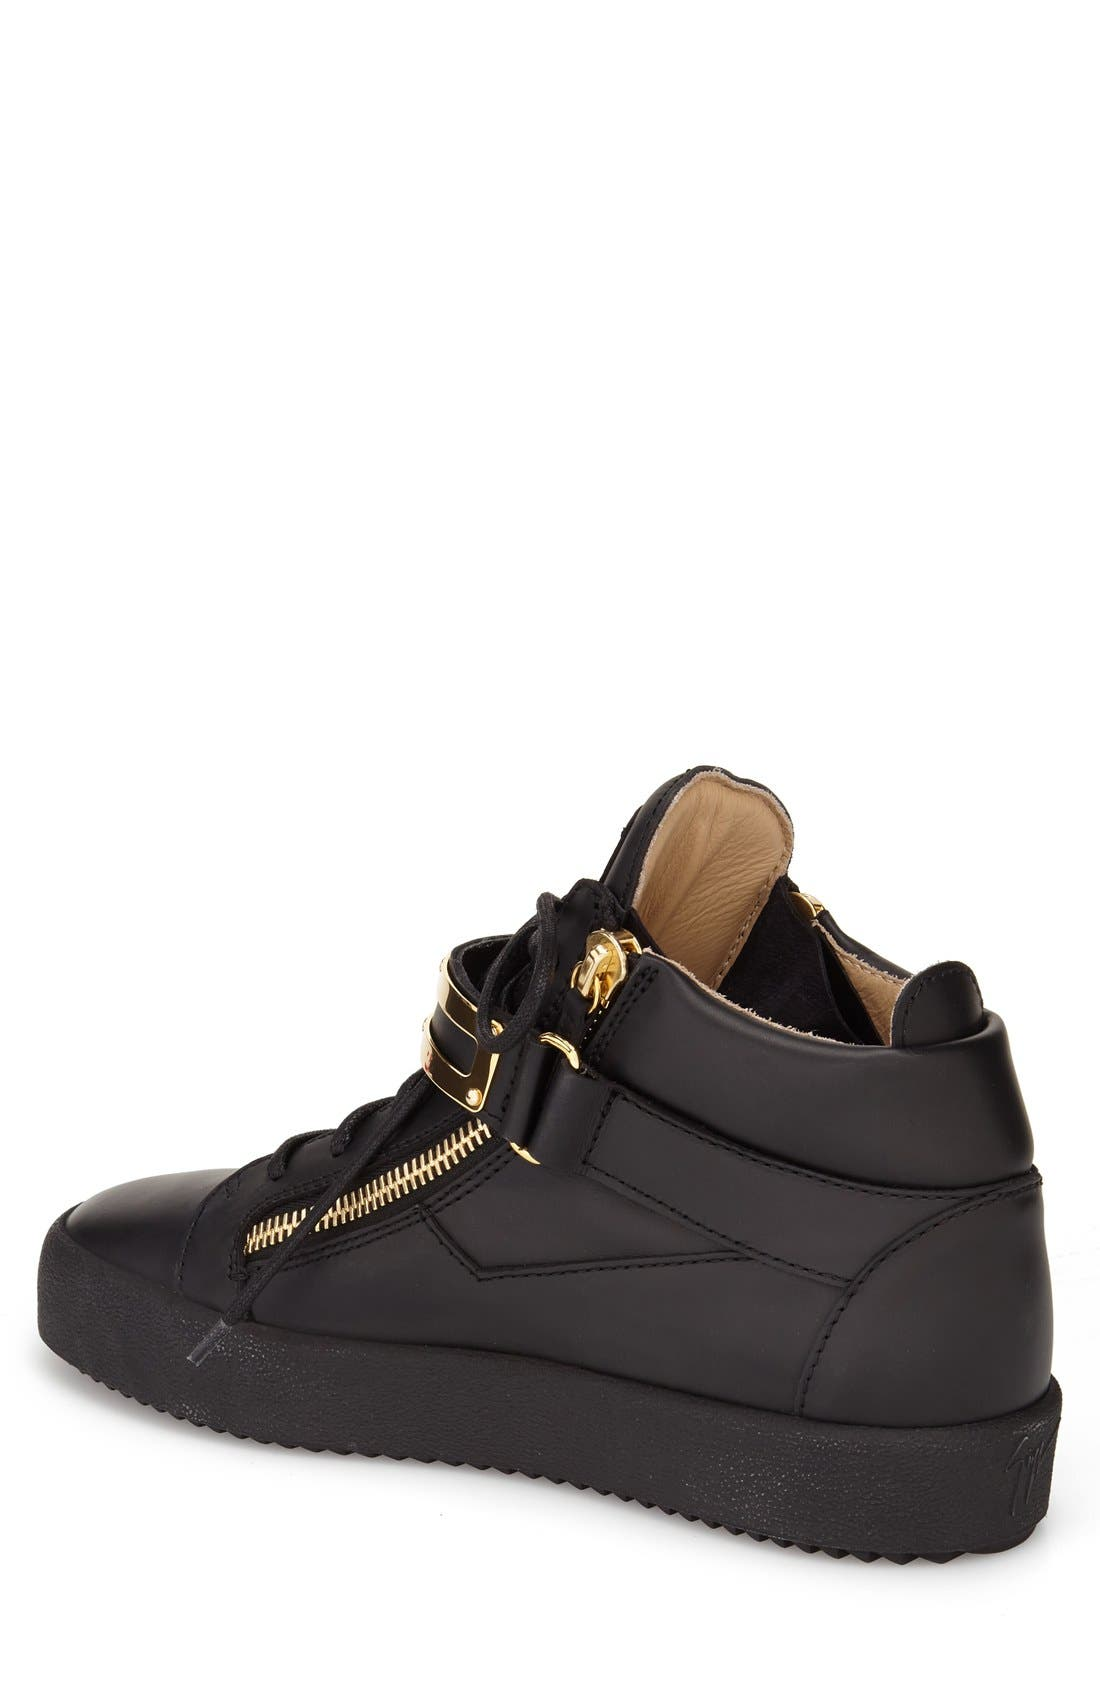 Alternate Image 2  - Giuseppe Zanotti Side Zip High Top Sneaker (Men)